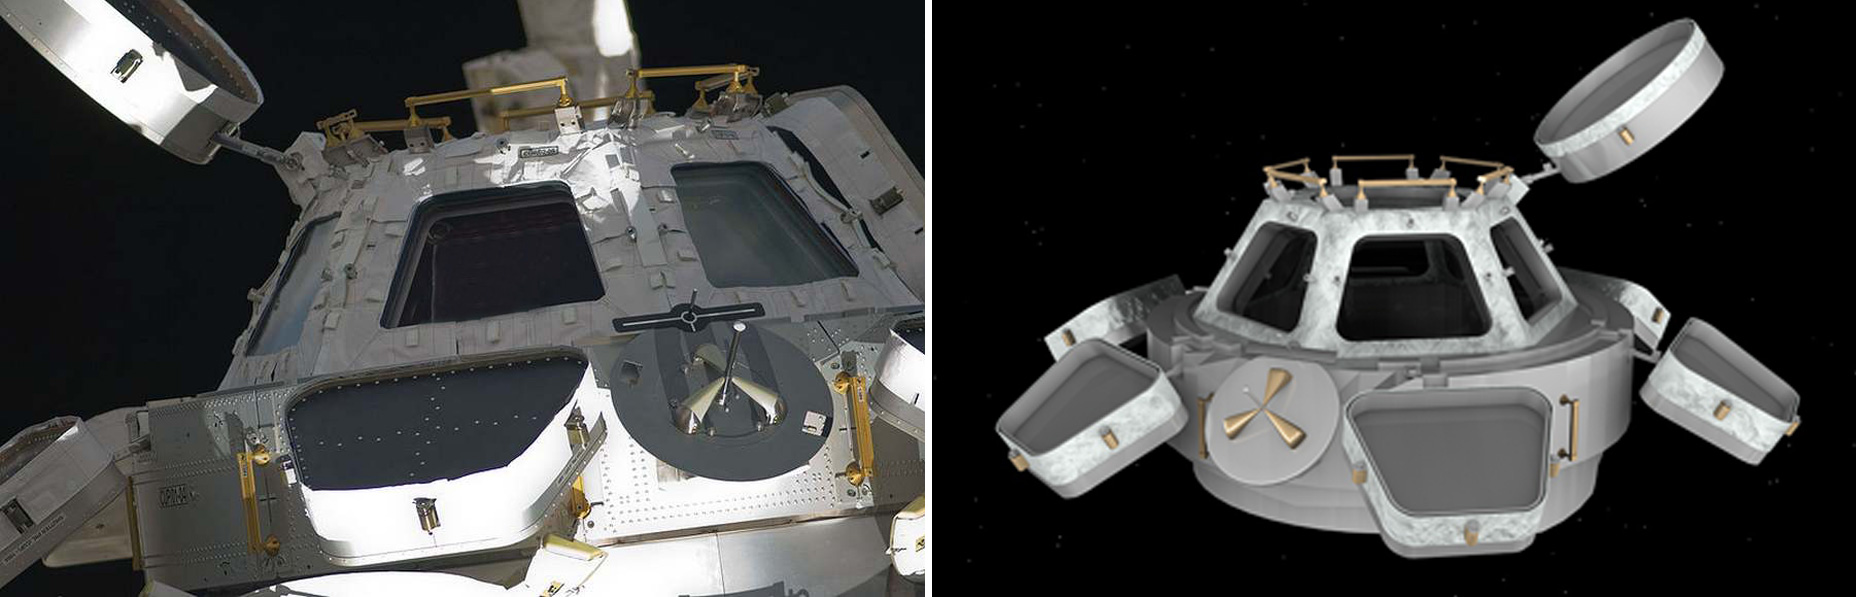 How we produced a 3D model of the International Space